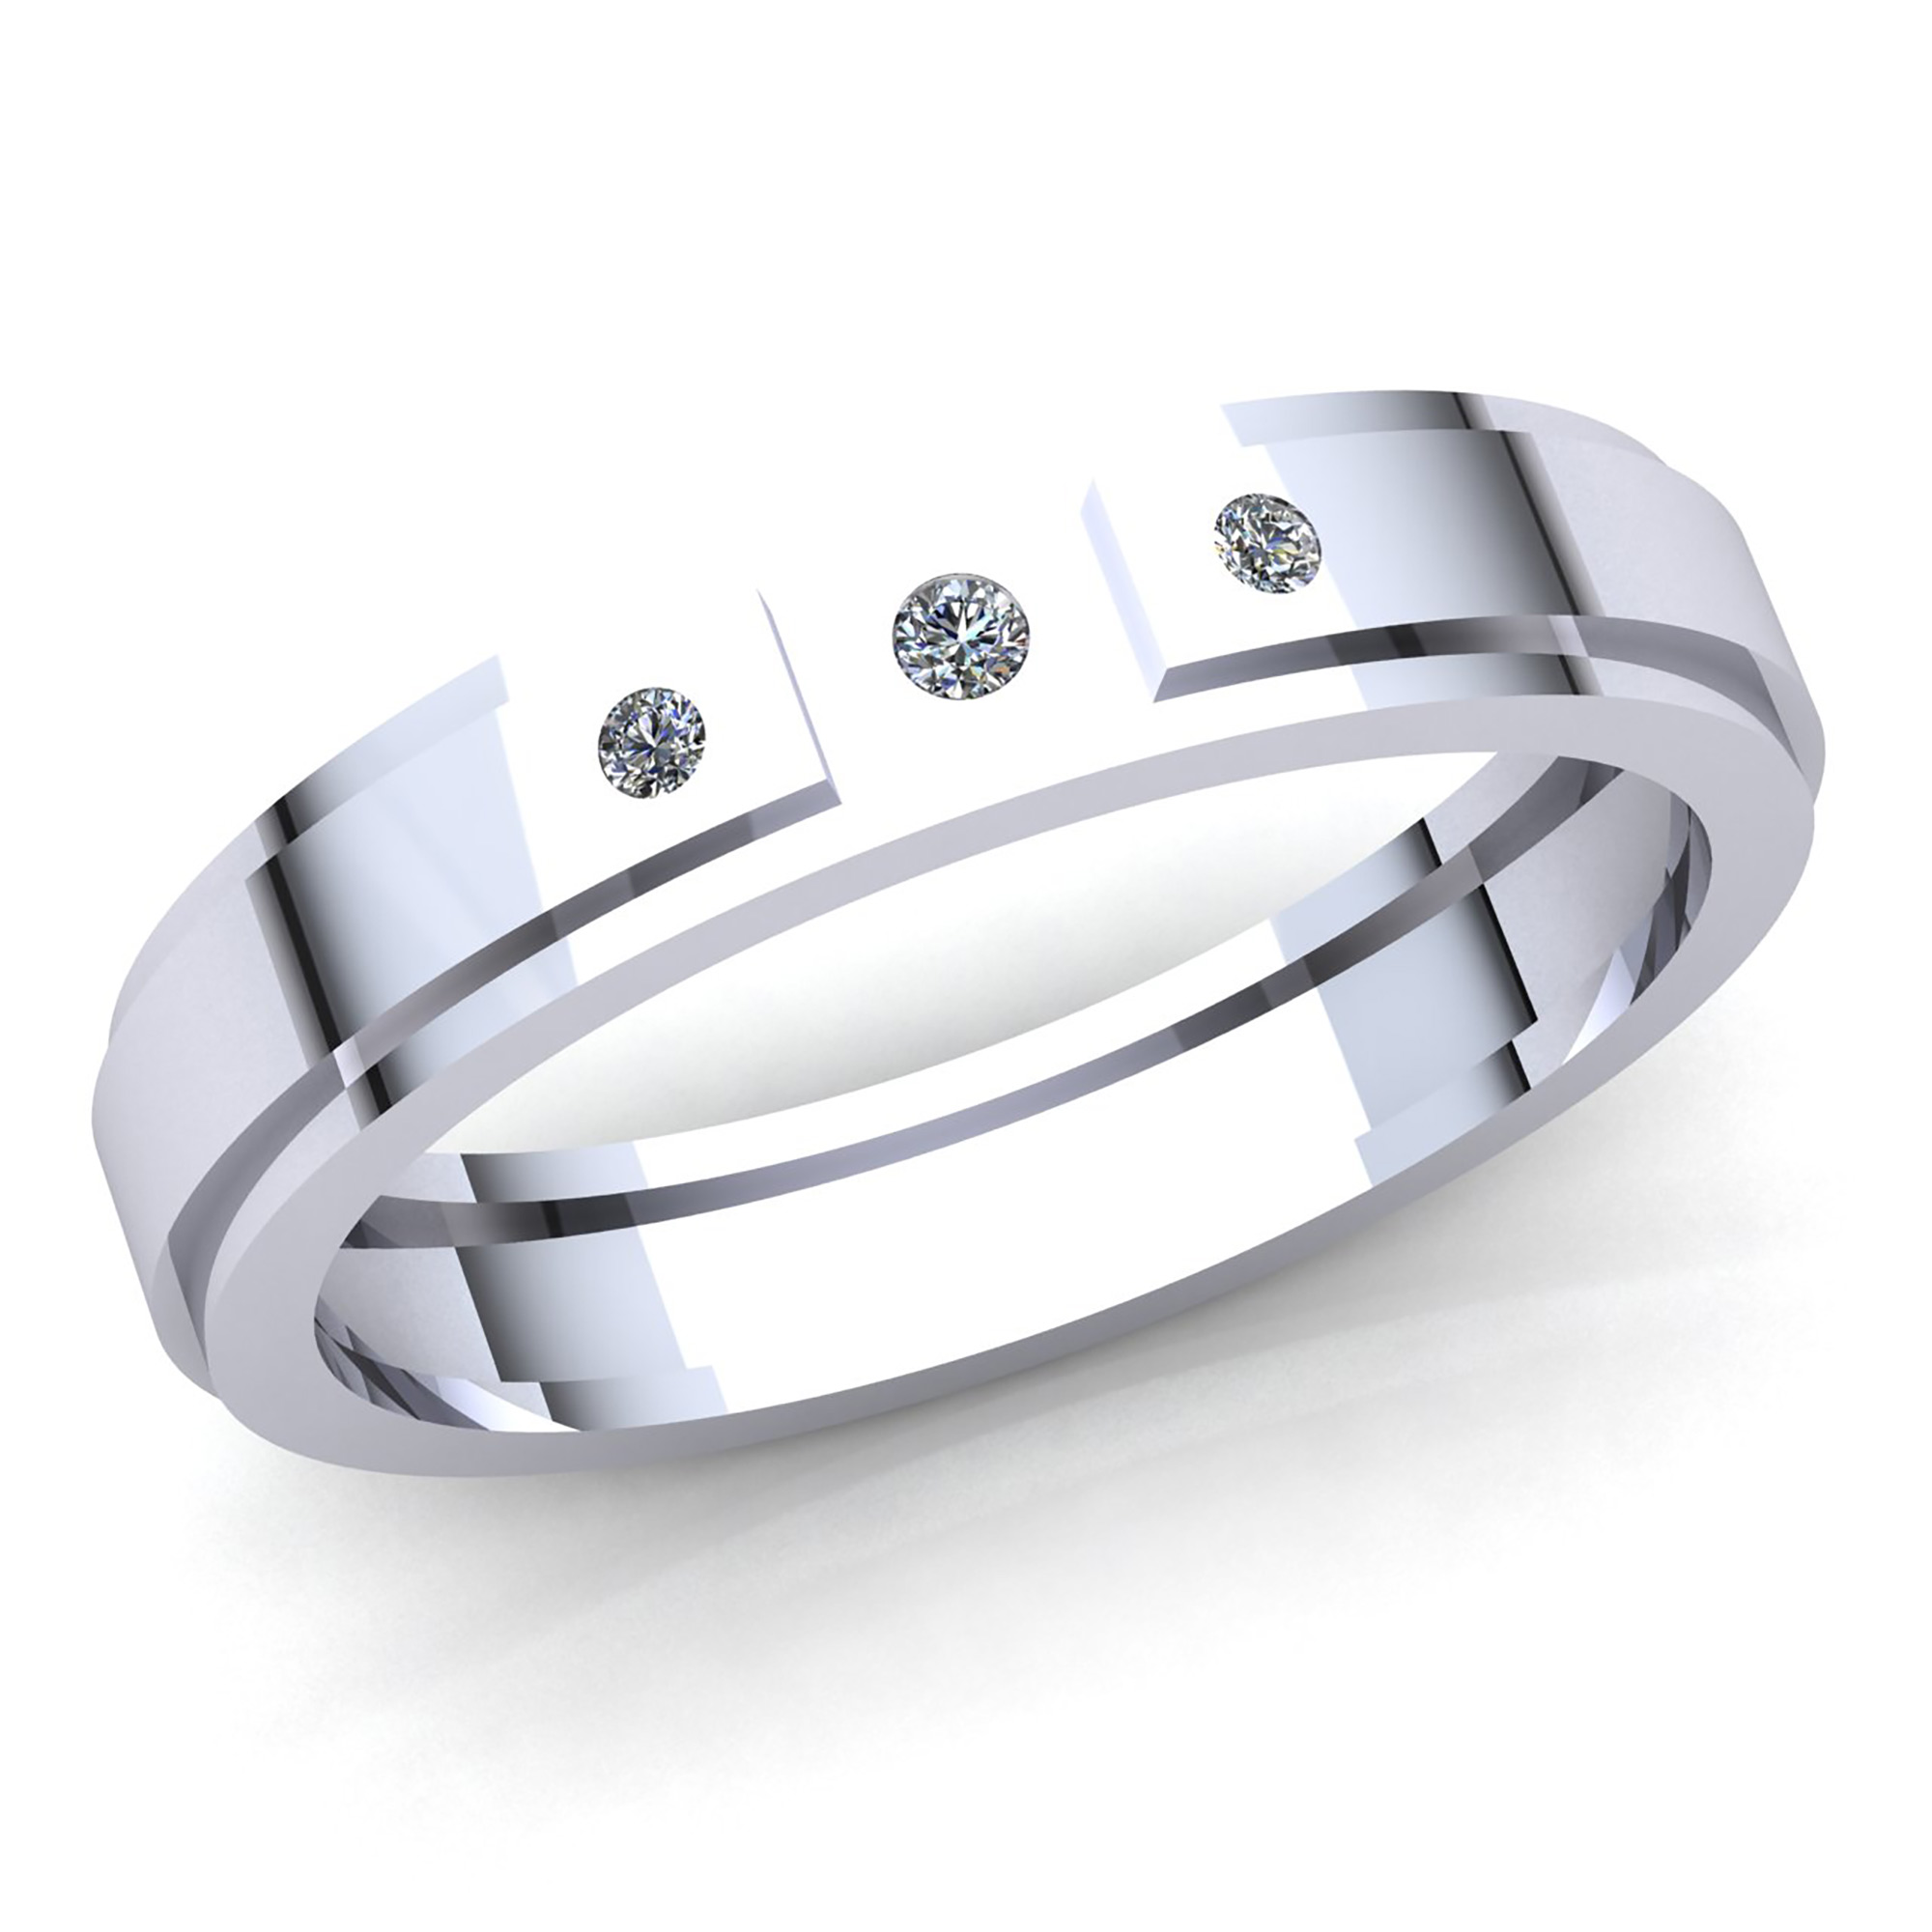 0.15 Ctw Natural Diamond Men/'s Band Ring 14k White Gold Over Sterling Silver